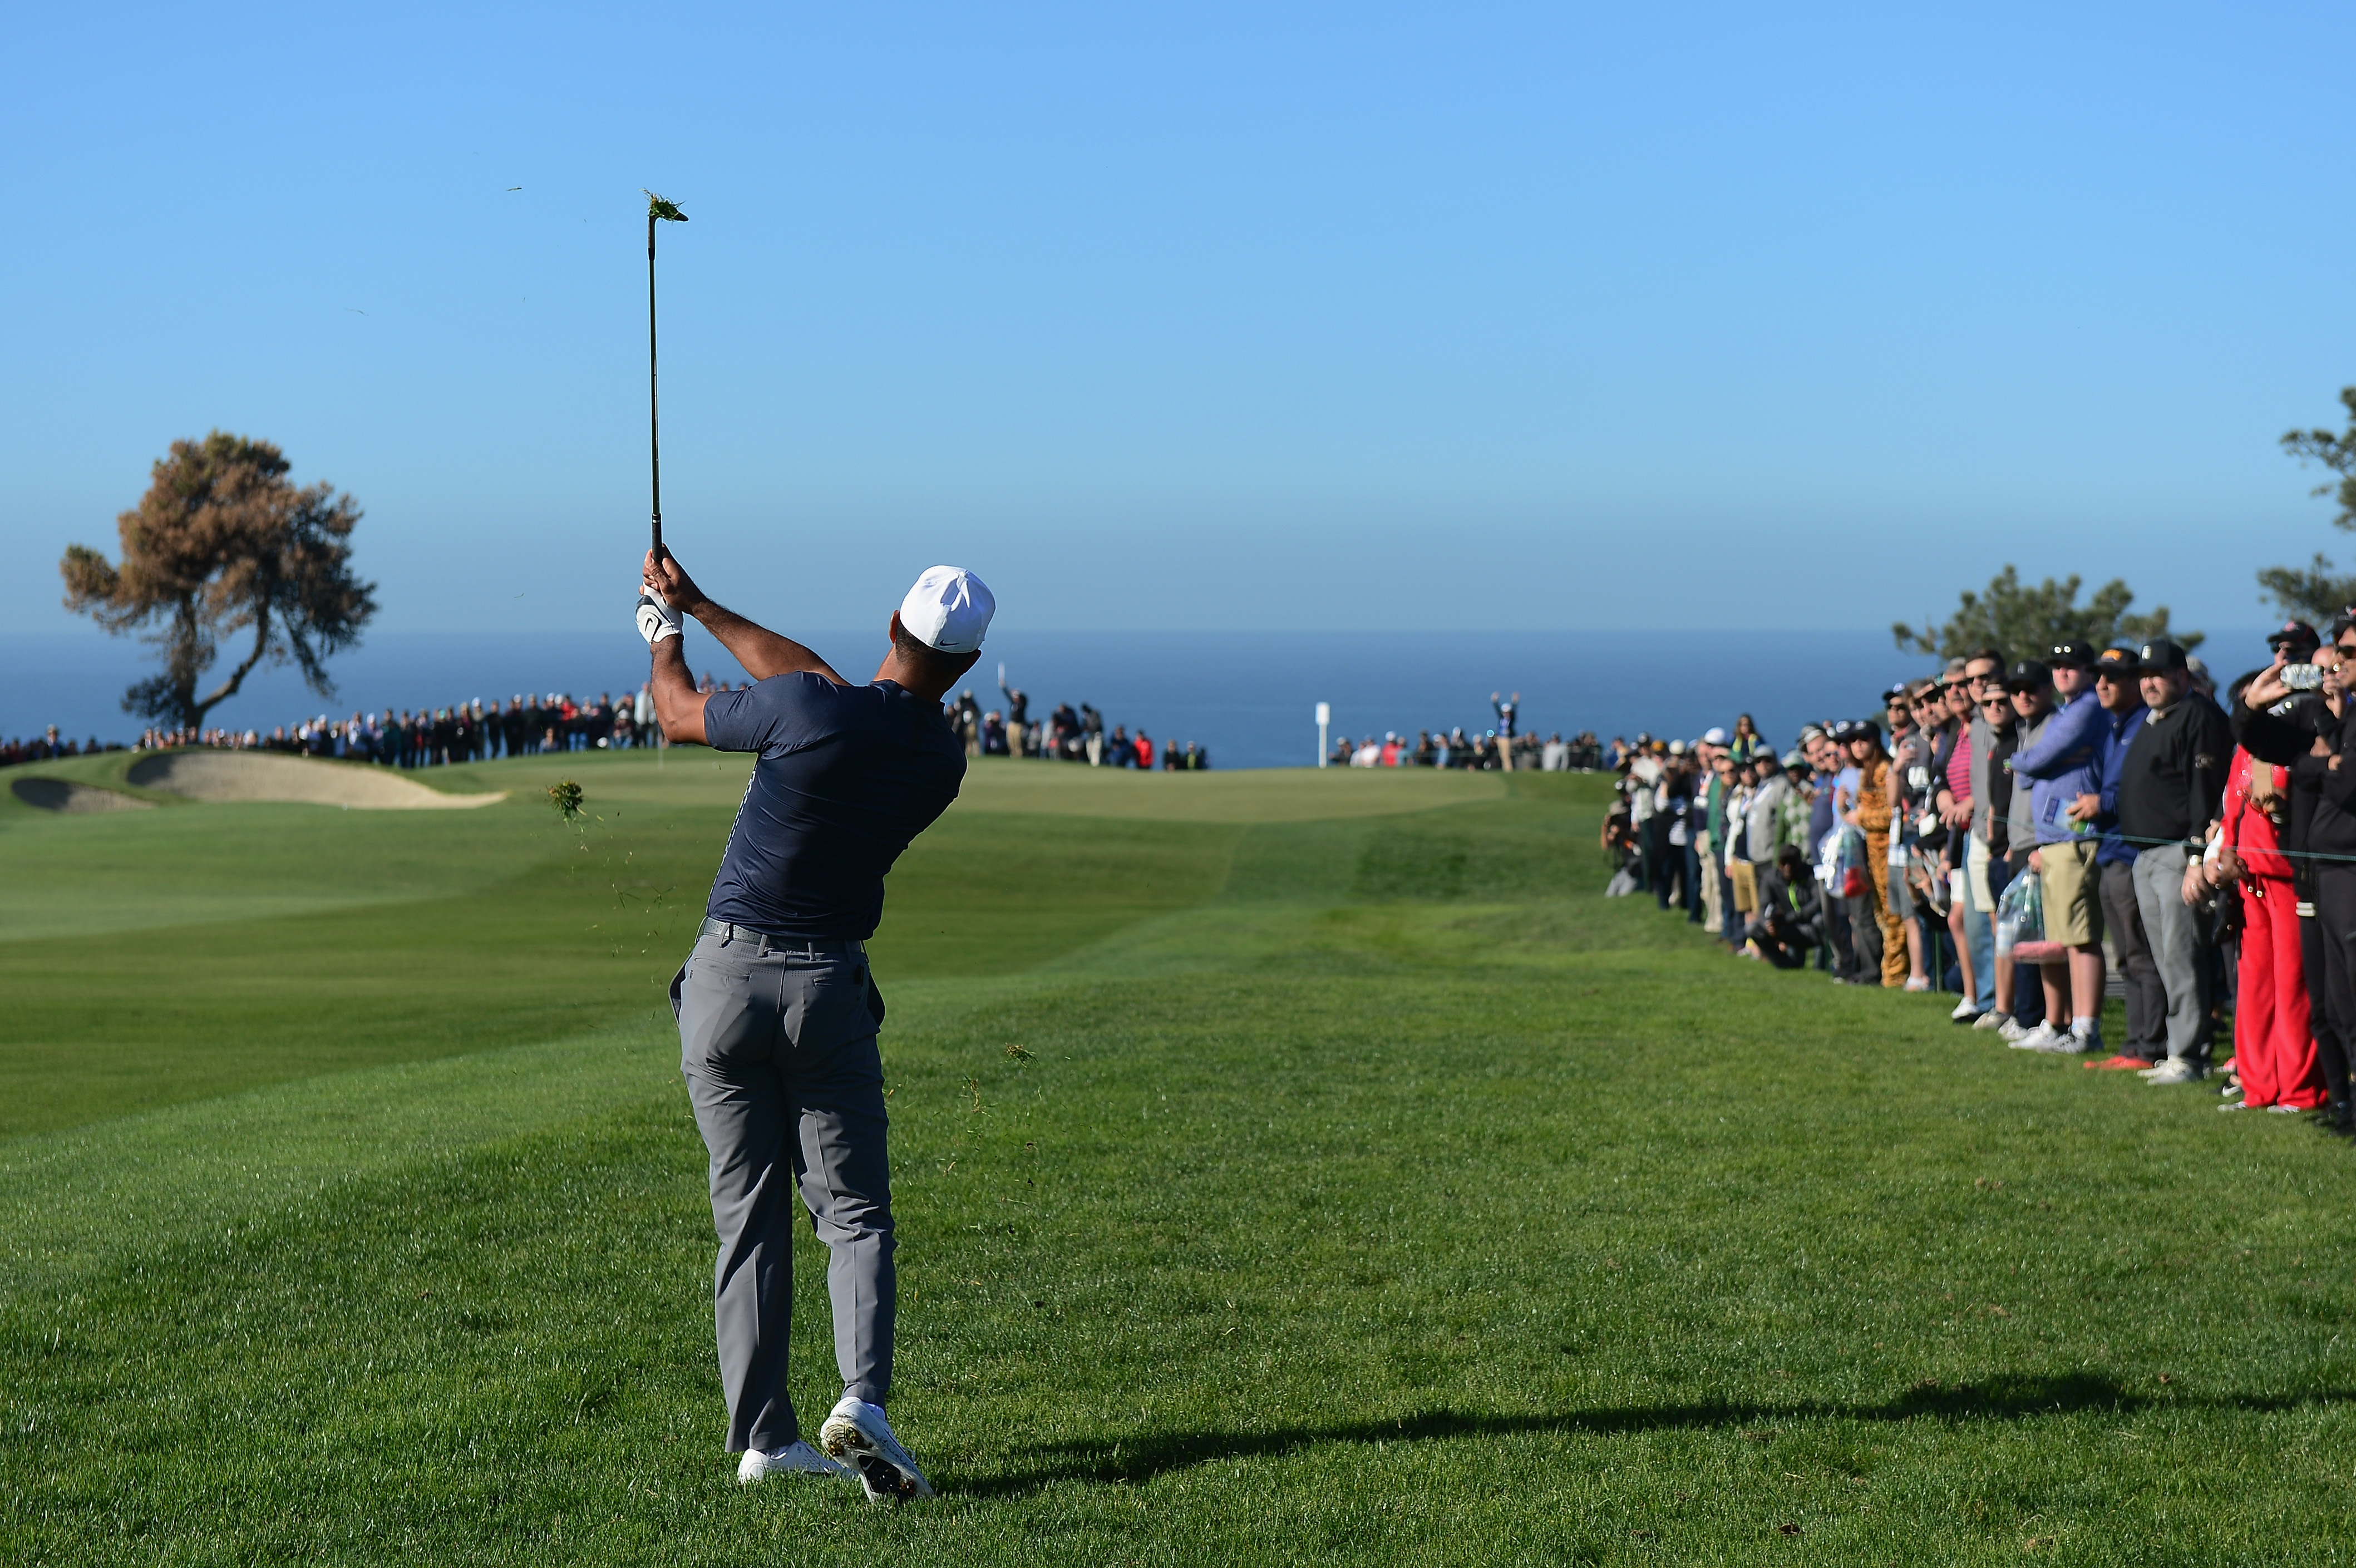 A guide to the West Coast swing, the best stretch on the PGA Tour schedule